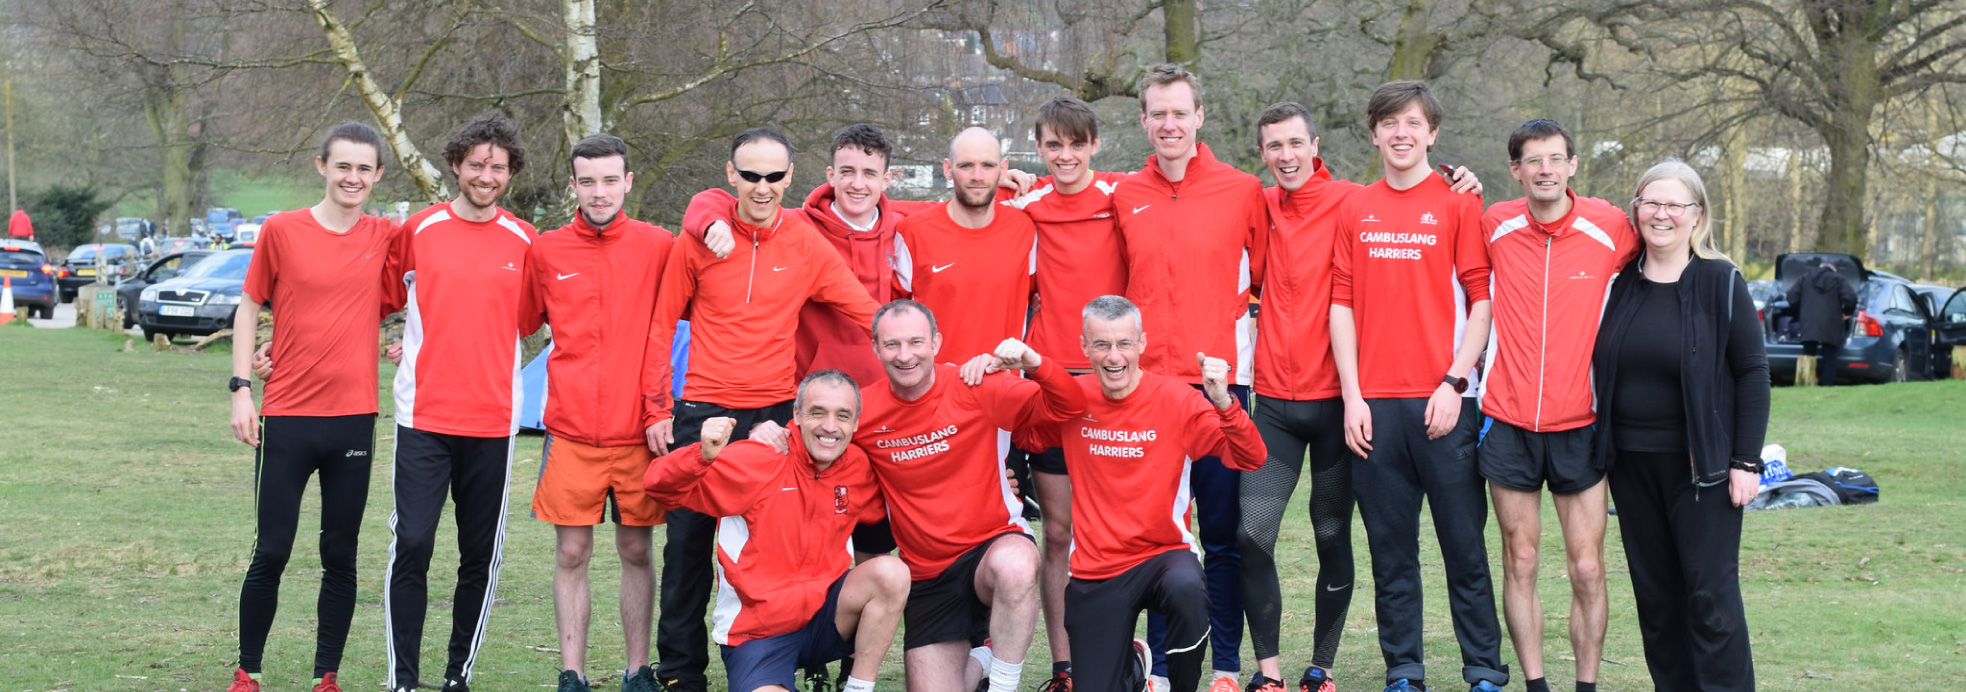 Cambuslang Harriers senior mens team at the ERRA 12 Stage Relays